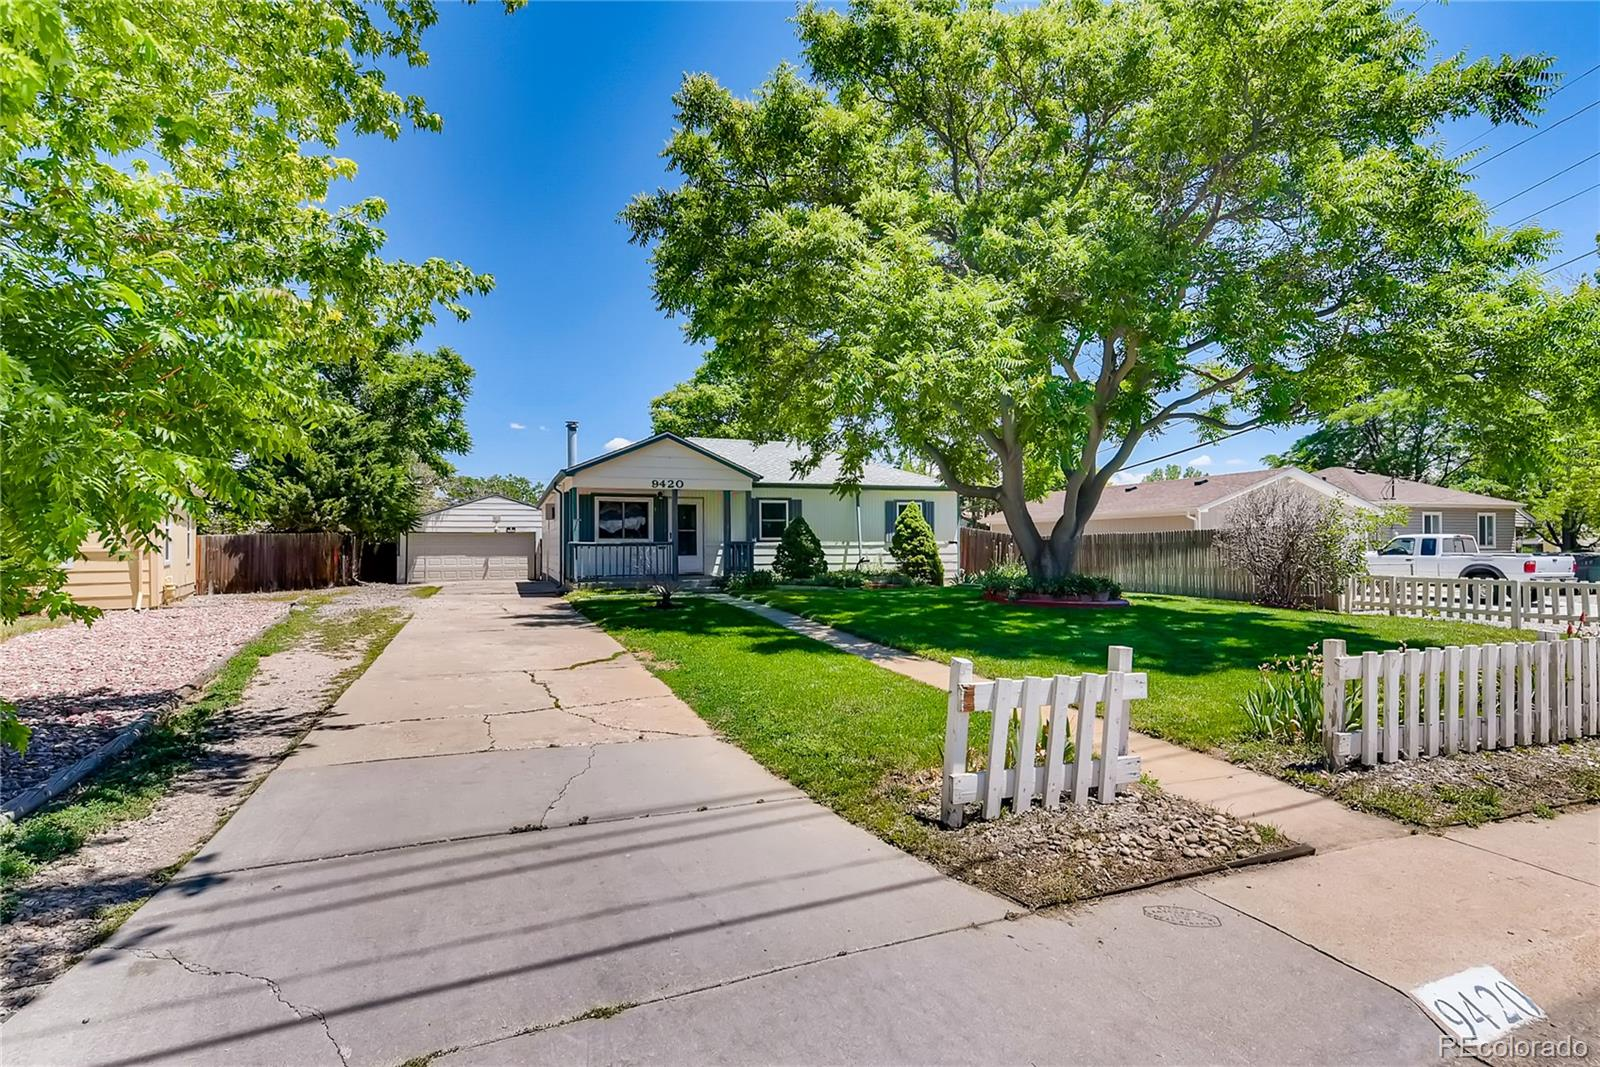 MLS# 4789149 - 2 - 9420 Russell Way, Thornton, CO 80229